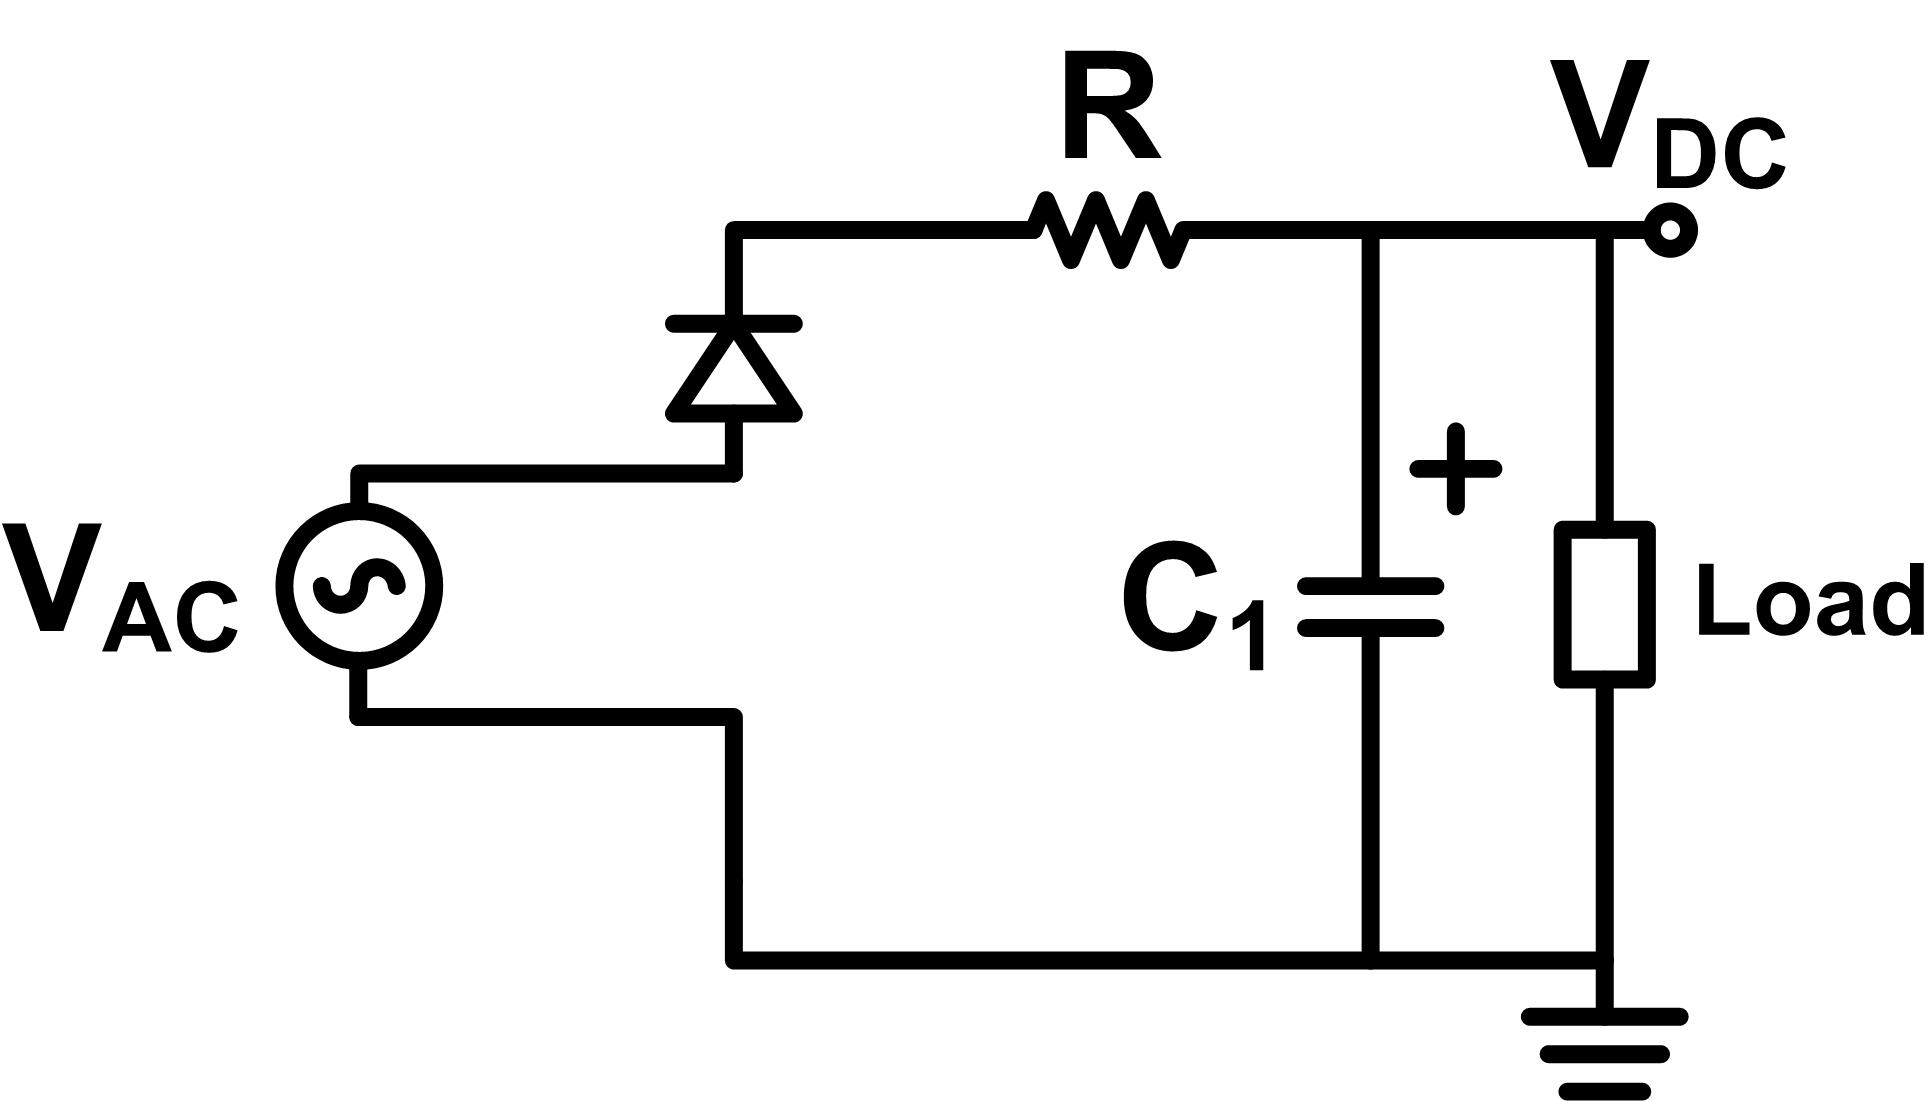 inrush current limiting circuit